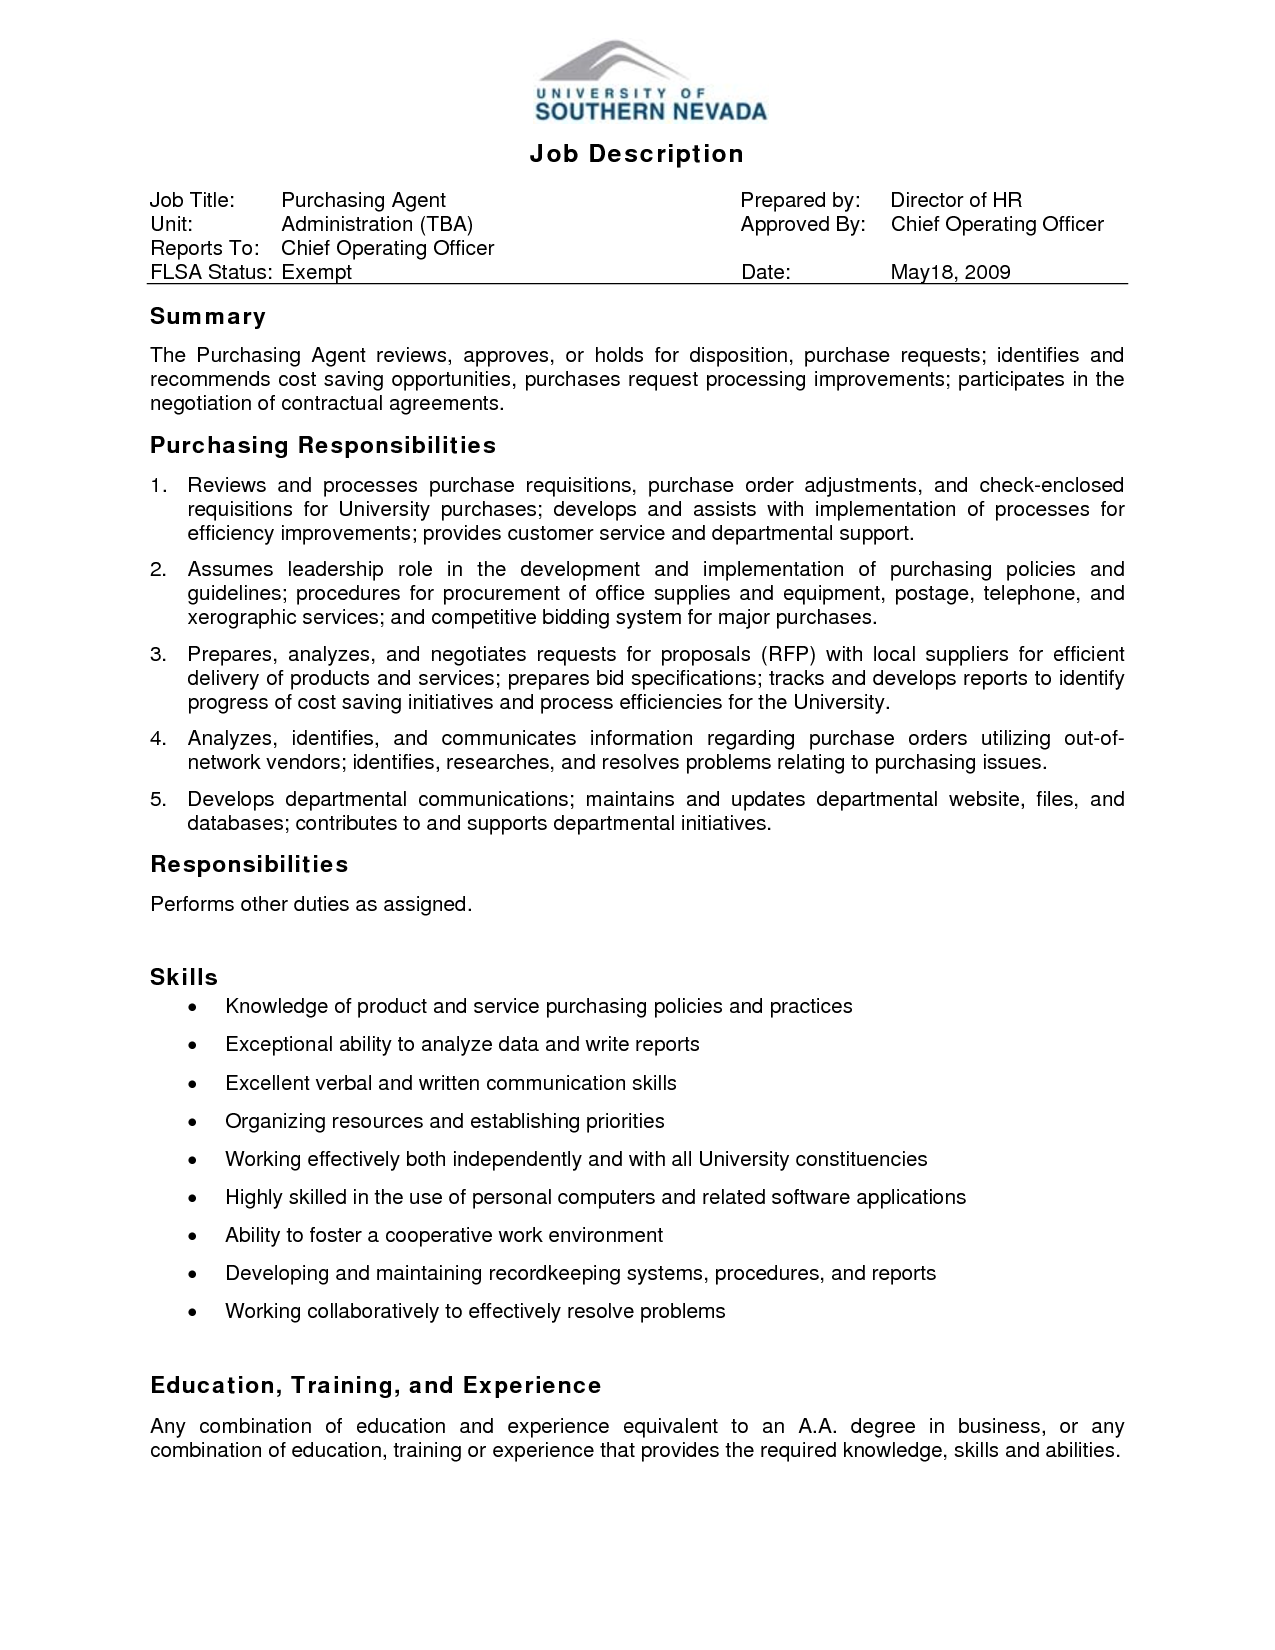 Administrative Assistant Duties Cover Letter Job Description Administrative  Assistant  Administrative Assistant Responsibilities